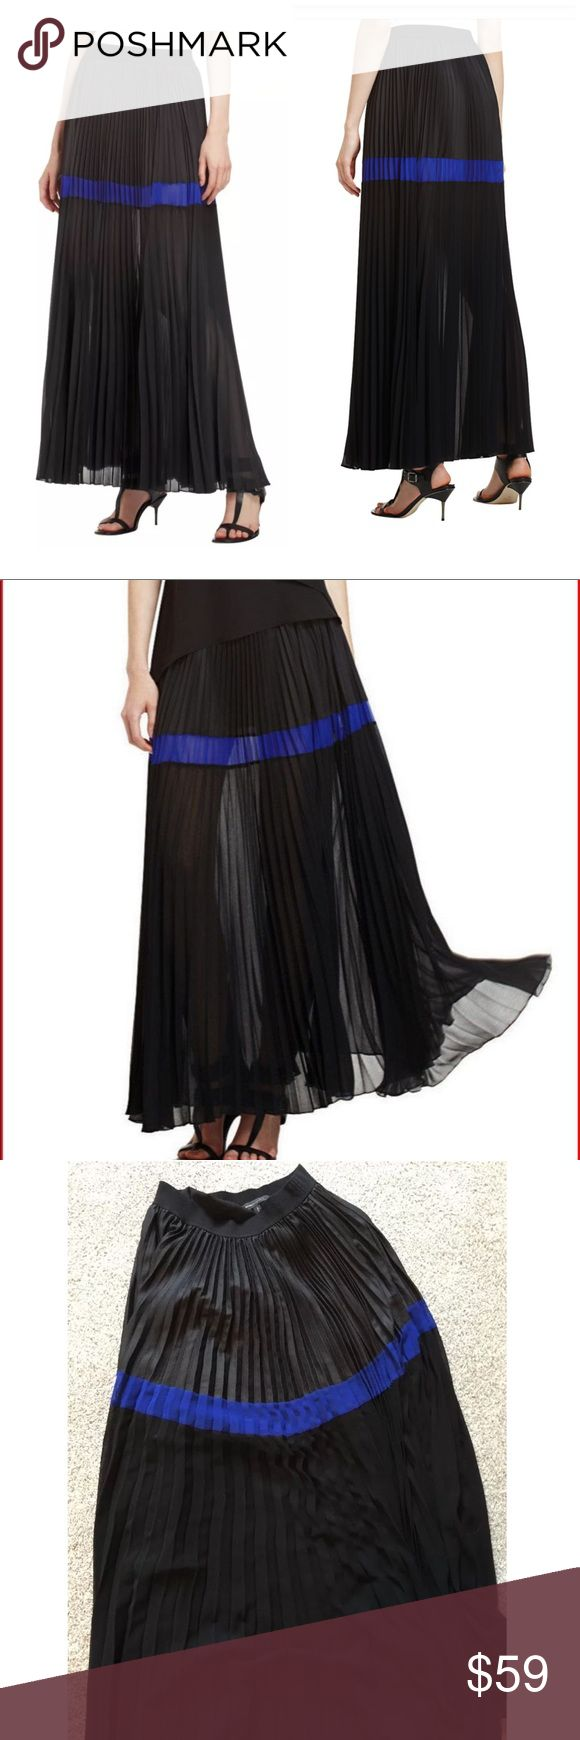 """Bcbg dallin B pleated maxi long black skirt XXS A timeless, floor-grazing skirt in smooth, pleated chiffon that sways gracefully against your curves as you move, and is detailed with an elastic waistband to ensure an ideal fit.  Pull-on Fabric: 100% polyester chintz chiffon; Lining: 100% polyester crepe de chine Washable, dry clean recommended Measurements: Waist: 11"""" /  Length from waist to hem: 39""""  Condition:   Great pre-owned condition!  -Fiber and style name tag was removed inside…"""